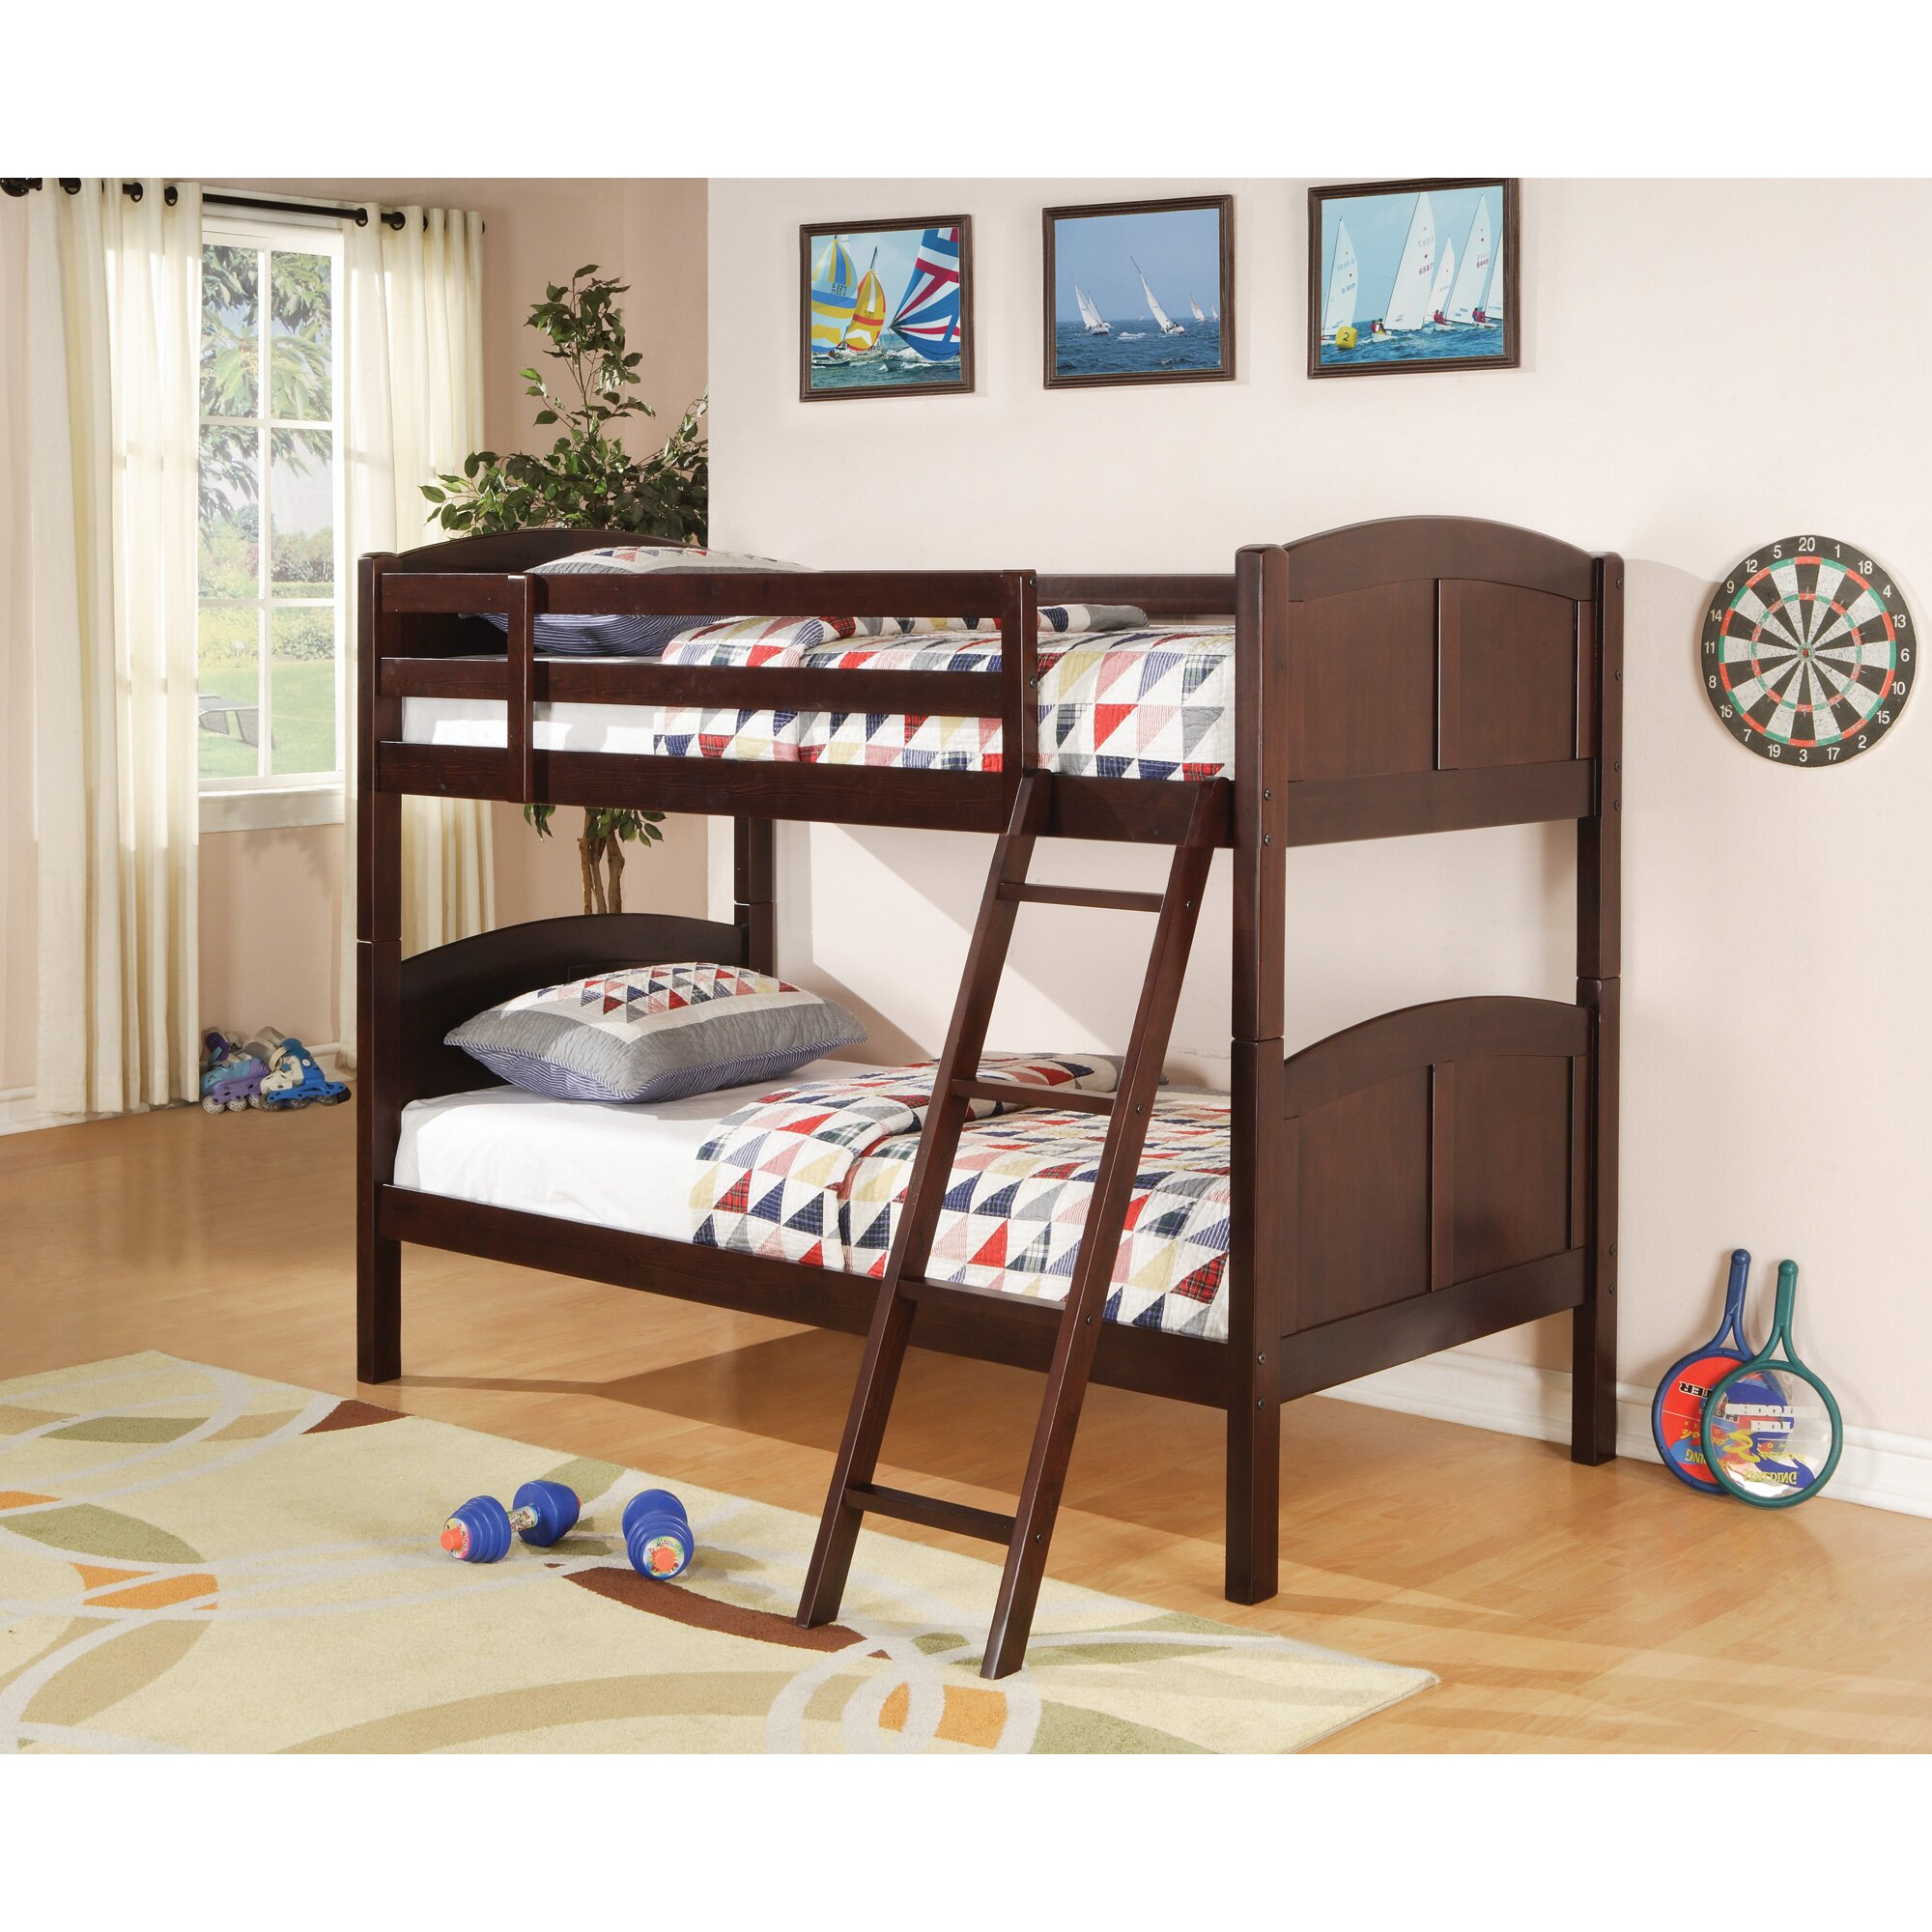 Wildon Home Oberon Twin Bunk Bed Reviews Wayfair